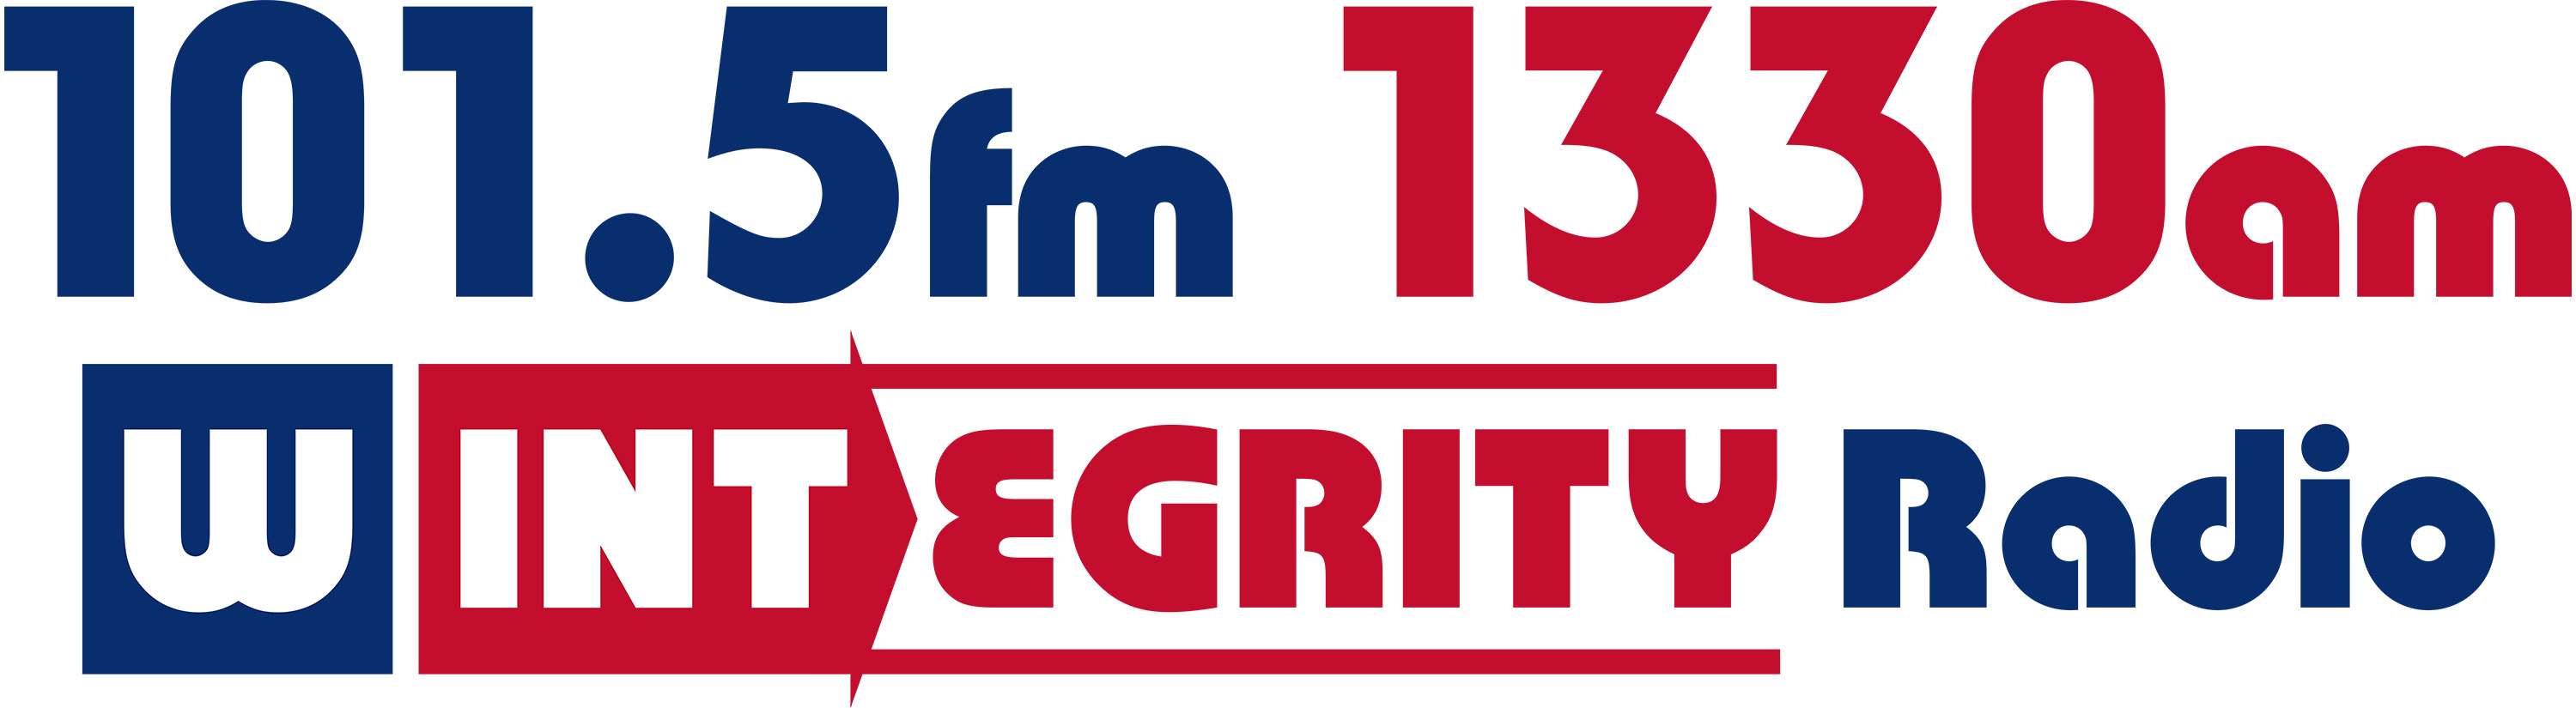 WINT Integrity Radio